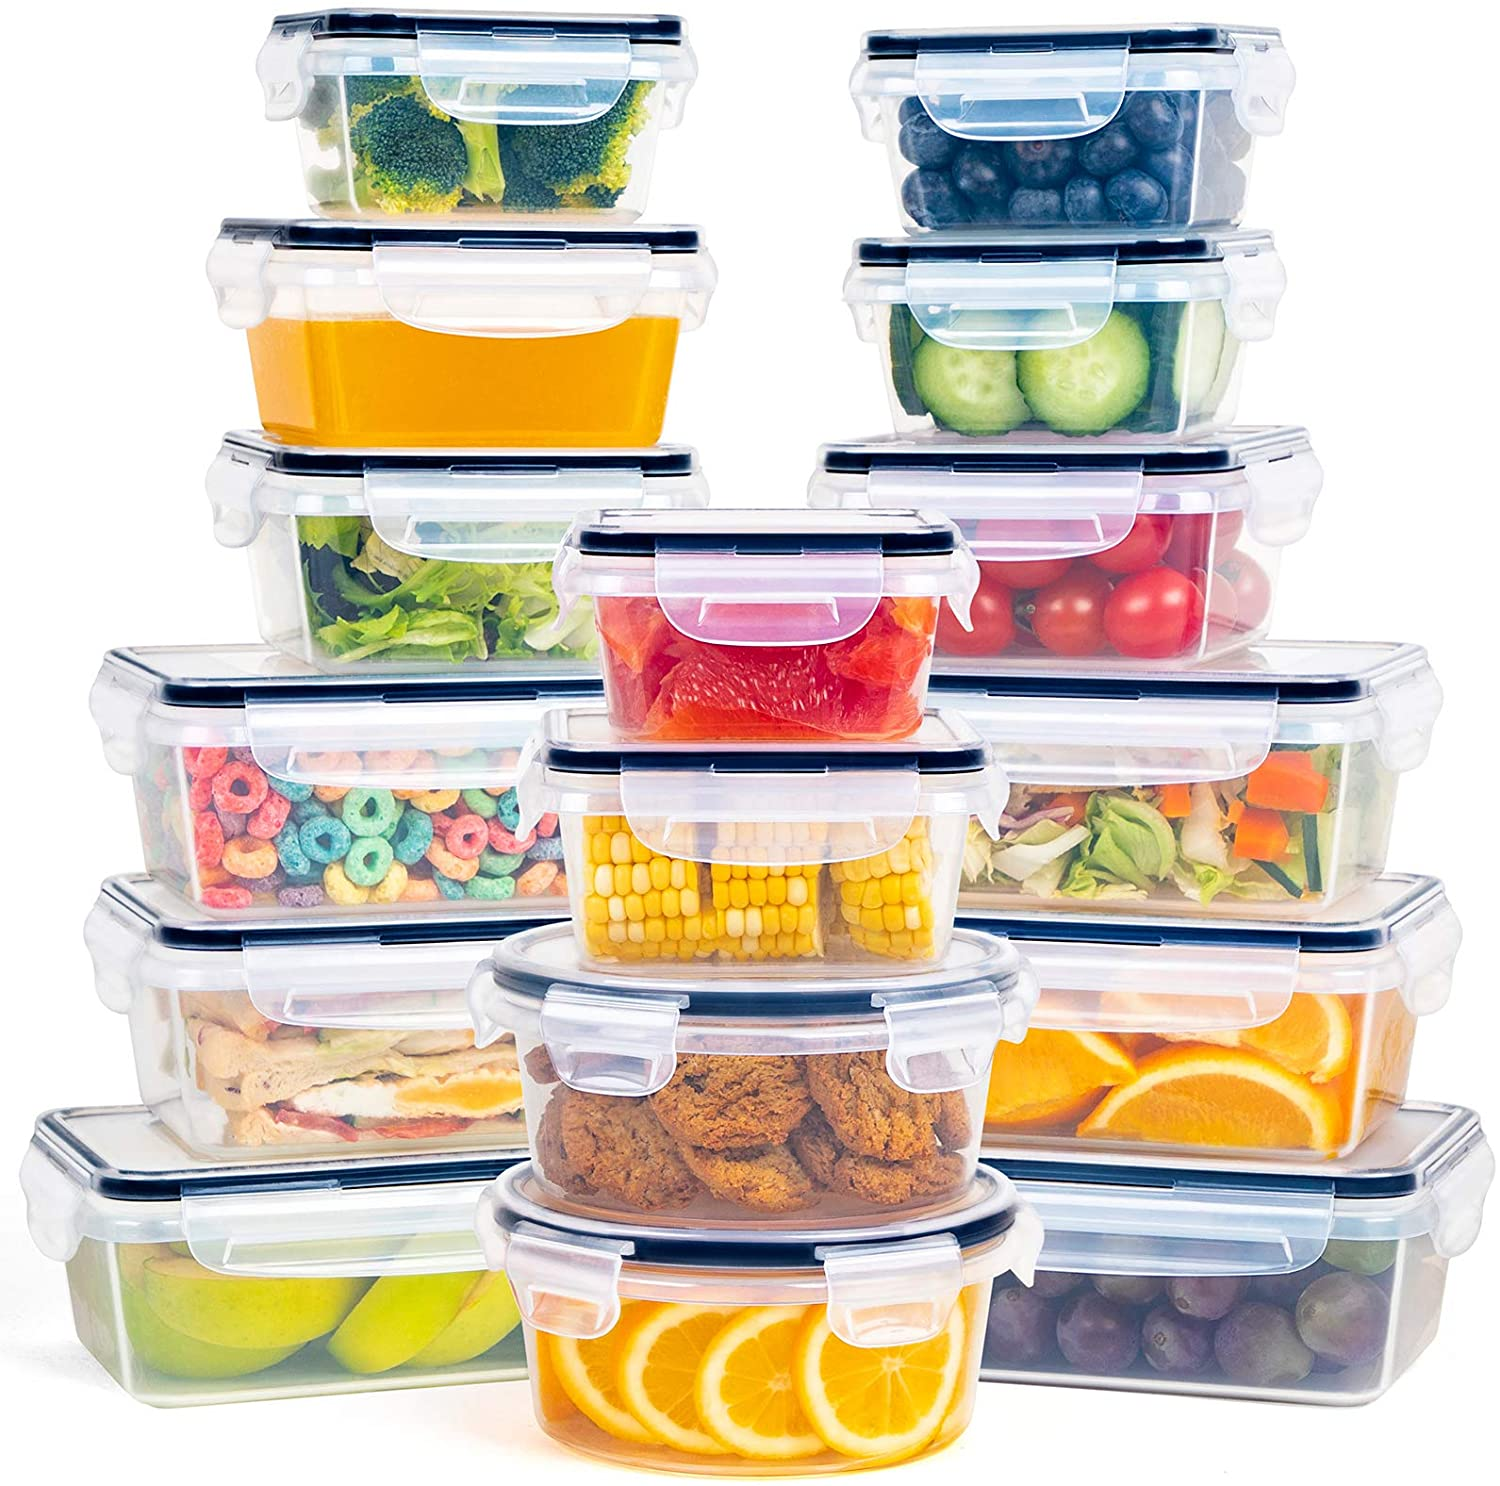 FOOYOO Multipurpose Food Storage Containers (Leak Proof Snap Lock)